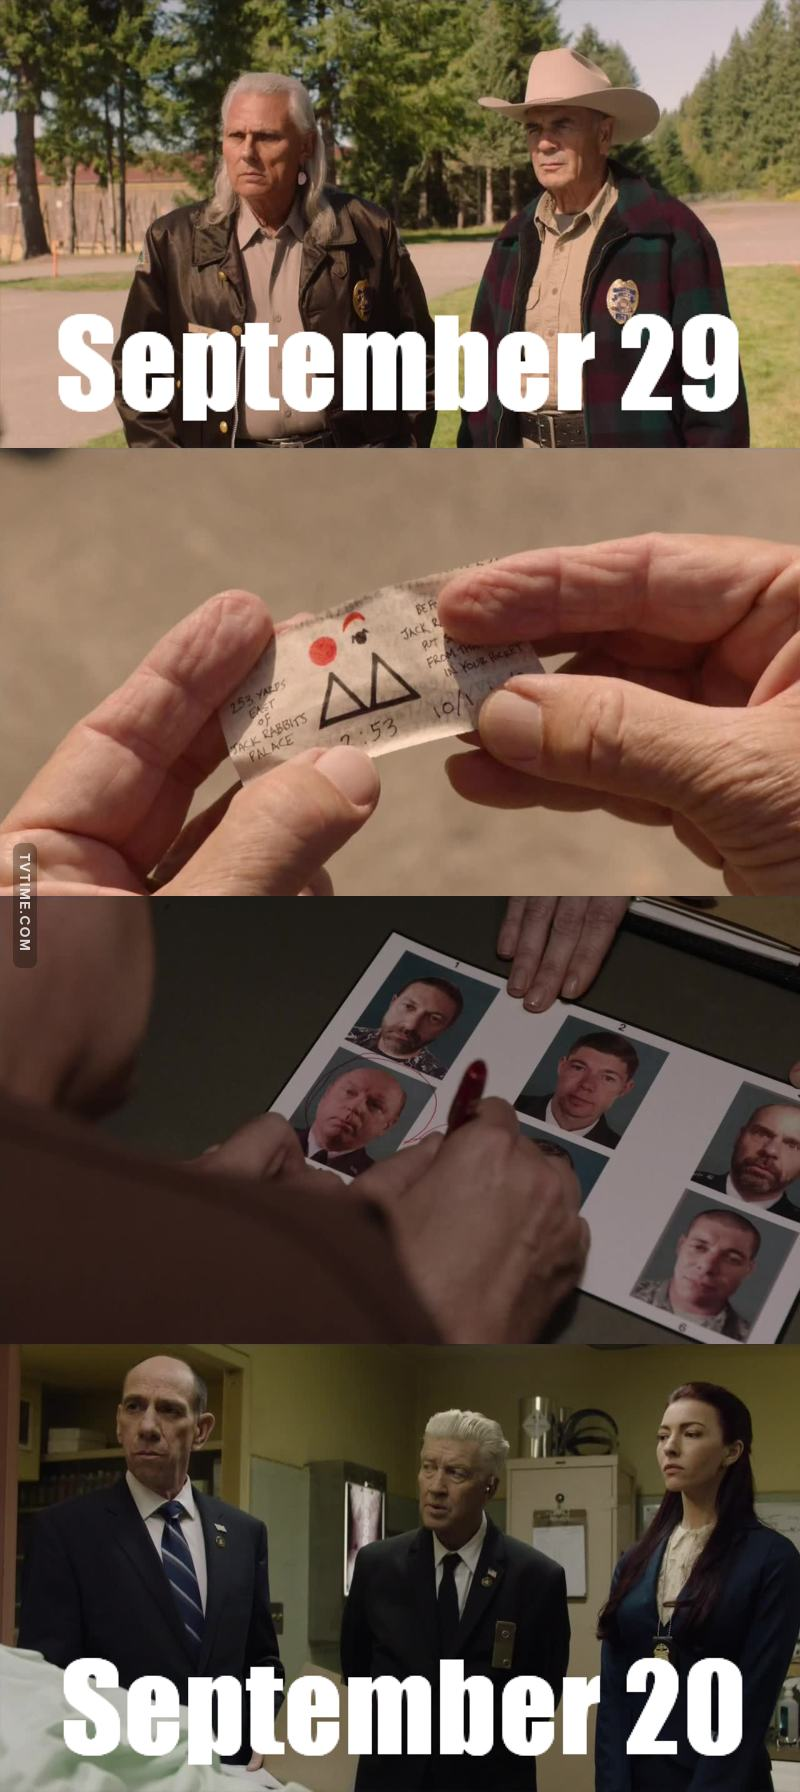 Now we understand that Twin Peaks has two different timelines. While Sheriff Truman mention their current date is SEPTEMBER 29, Agent Tamara asks Hastings to write the actual date and it's.. SEPTEMBER 20.